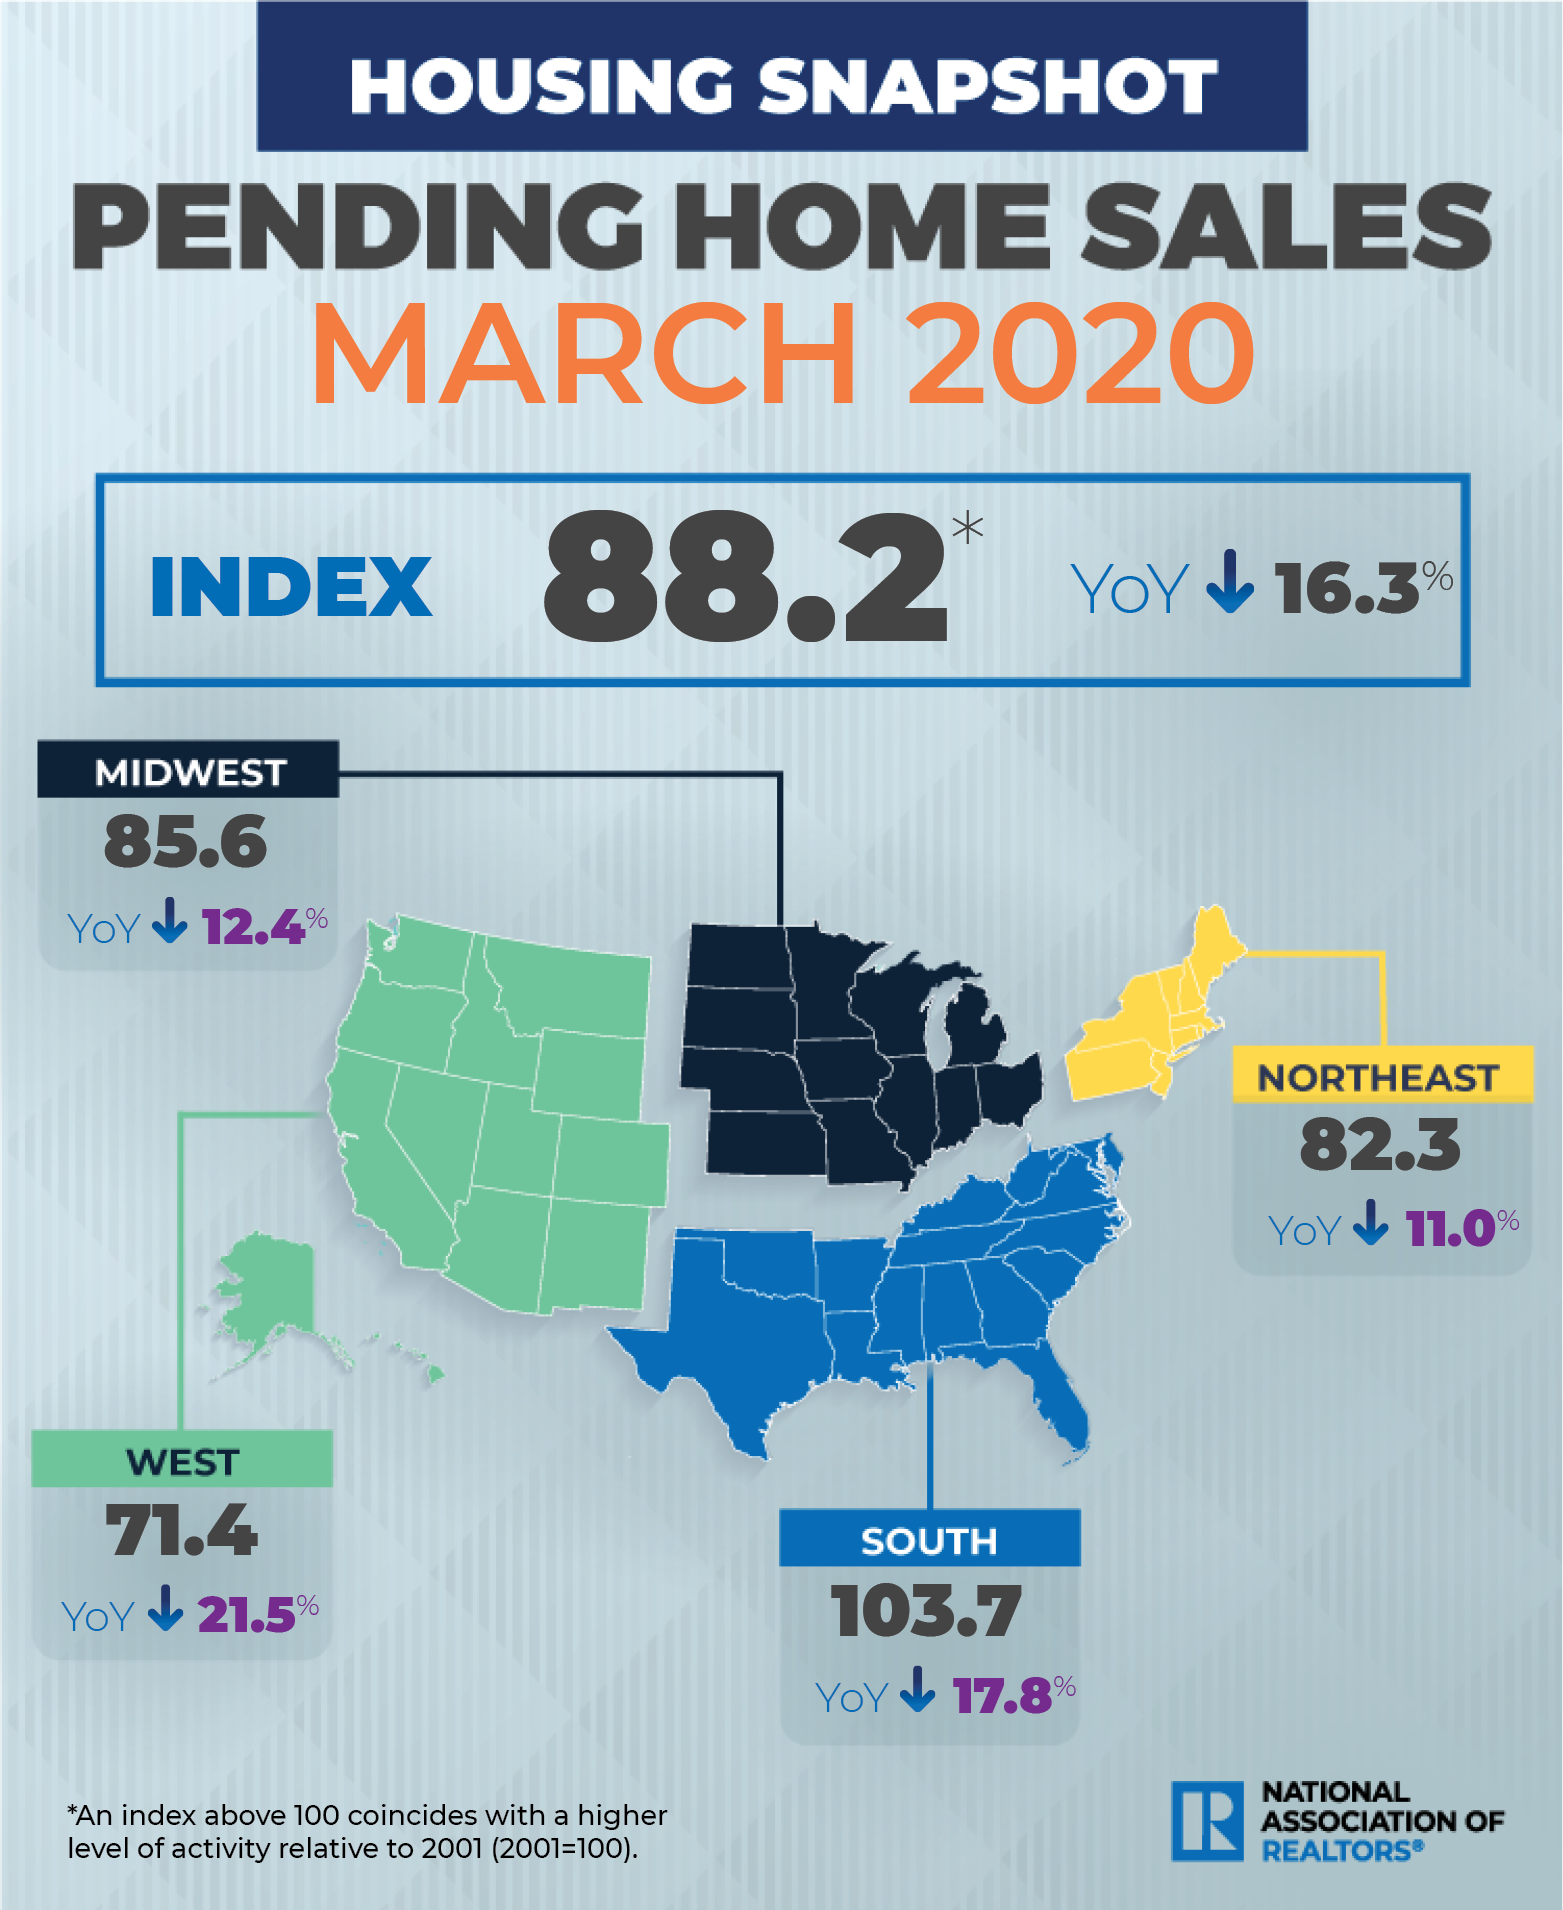 NAR Pending home sales Mar. 2020. Visit source link at the end of this article for more information.